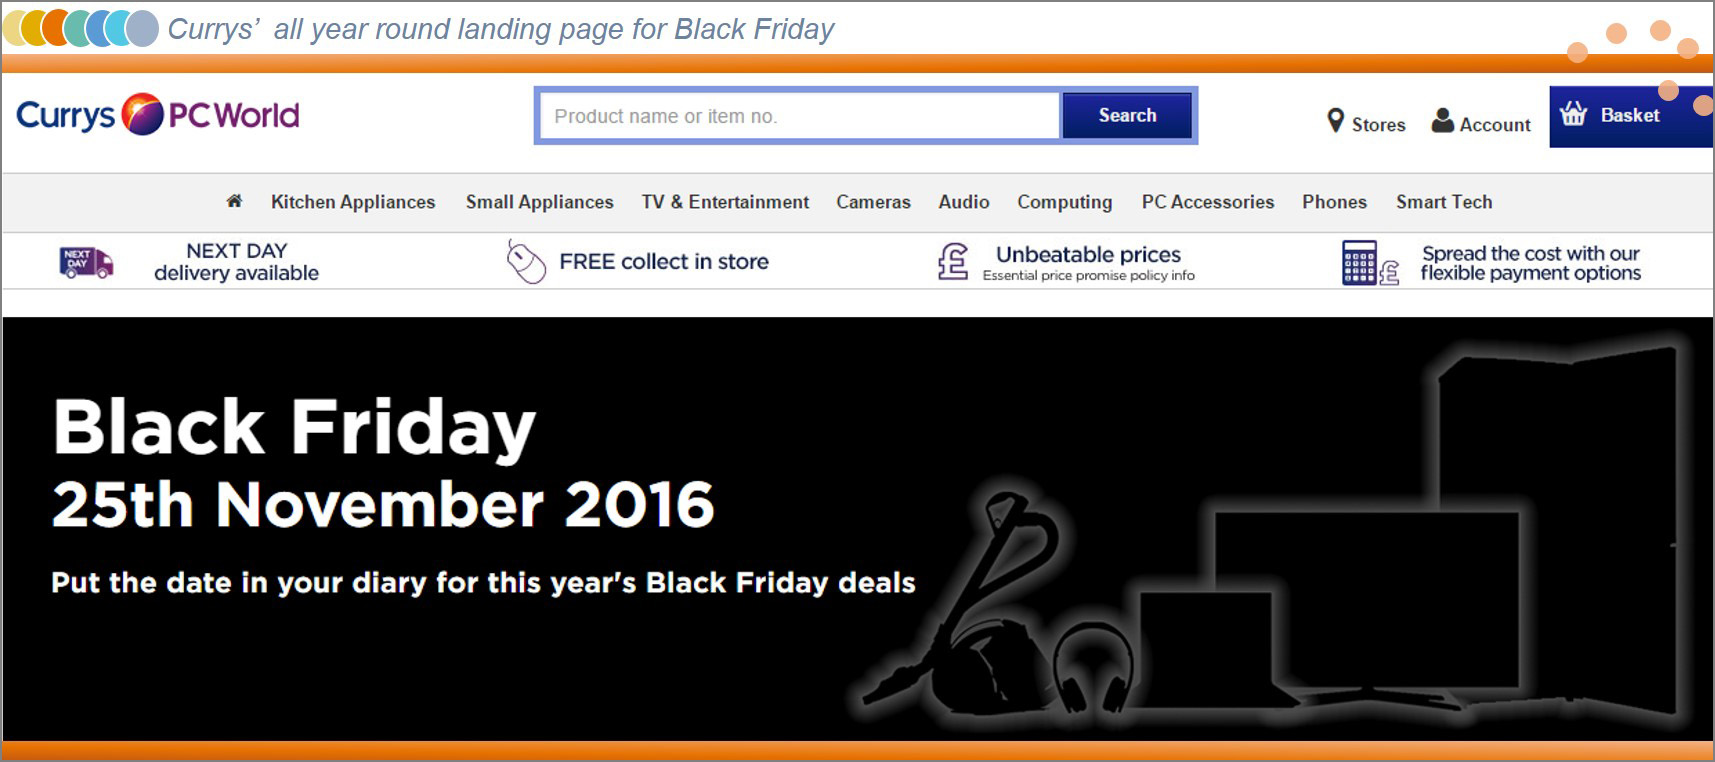 4835dbcbd 7 Best Black Friday Marketing Ideas for eCommerce Business